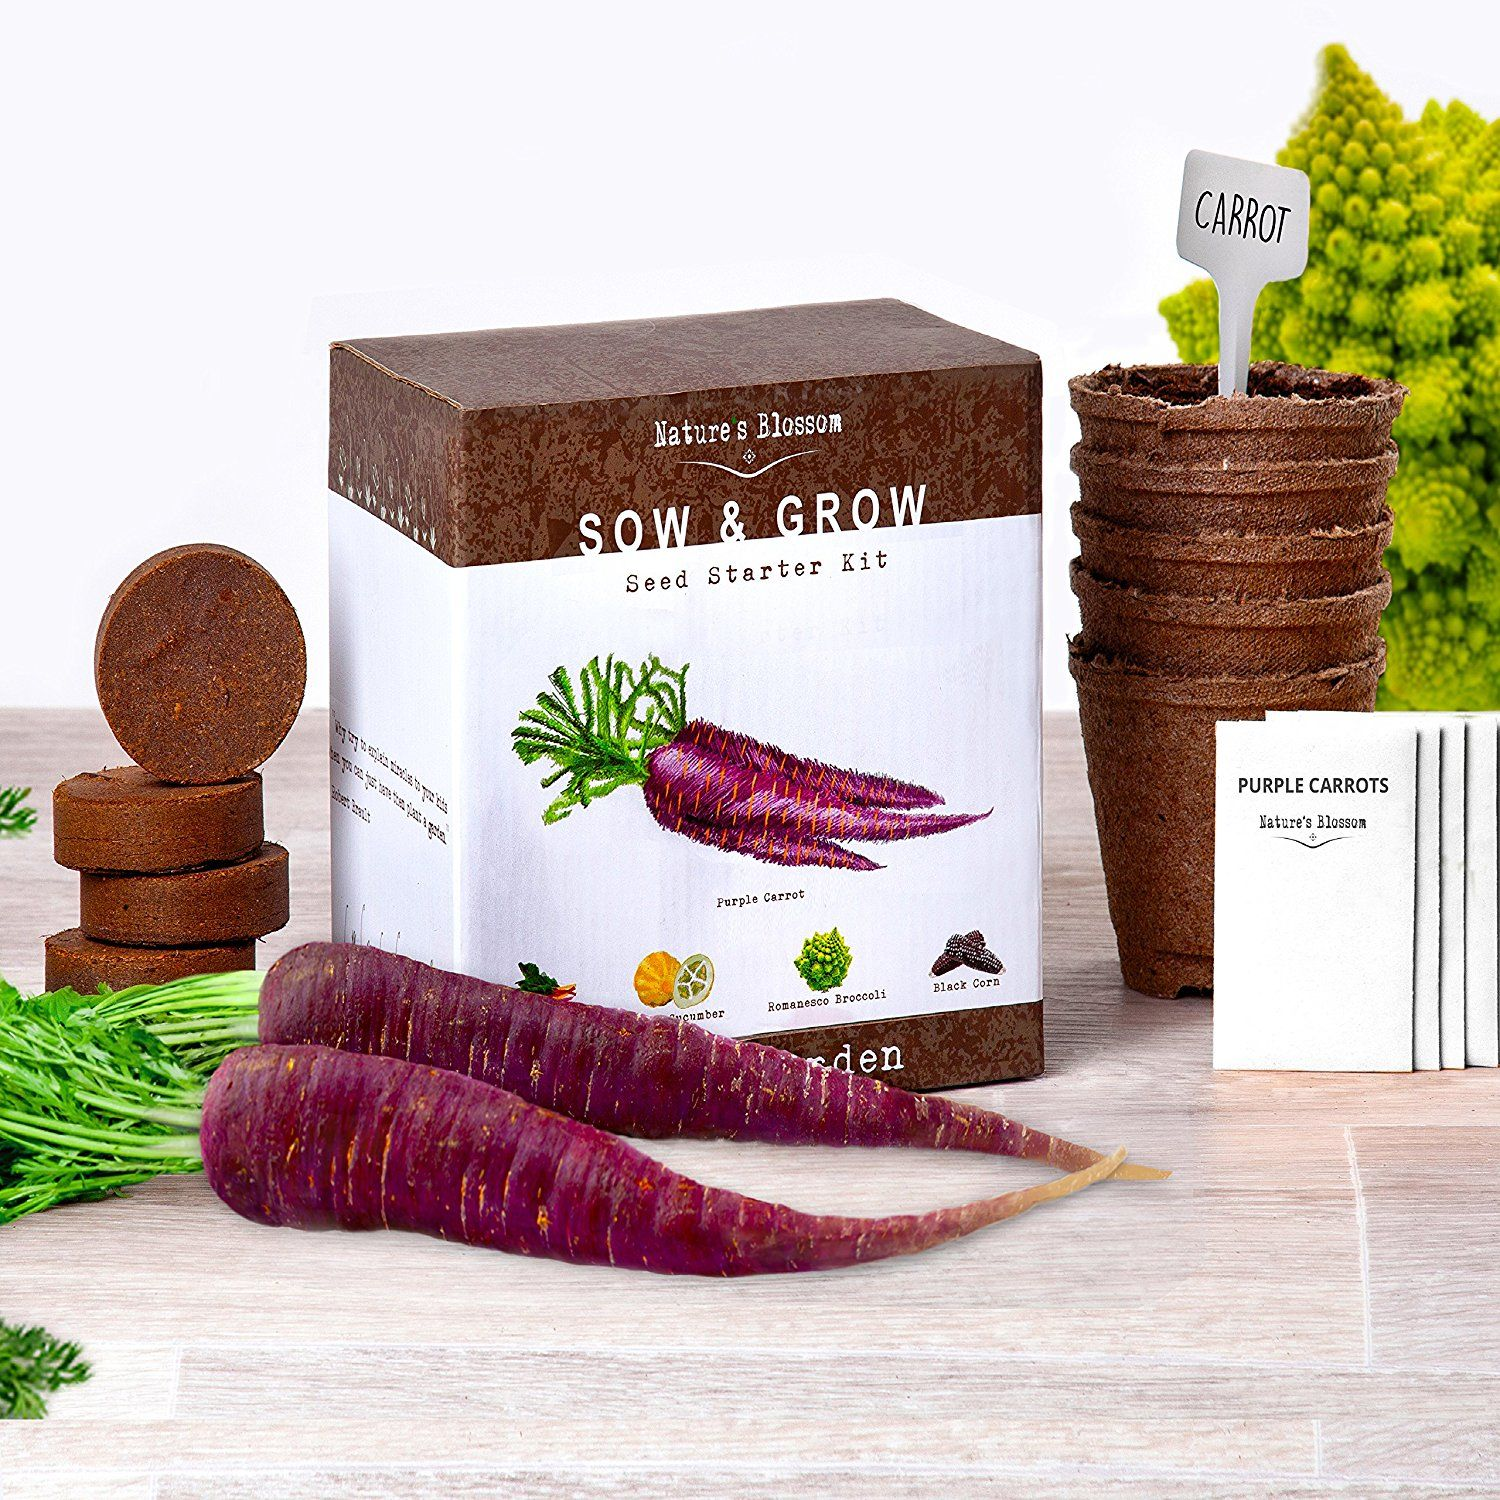 Grow 5 Unique Vegetables With Natureu0027s Blossom Veg Growing Kit. Cool Gift  Idea For Men, Women And Kids.